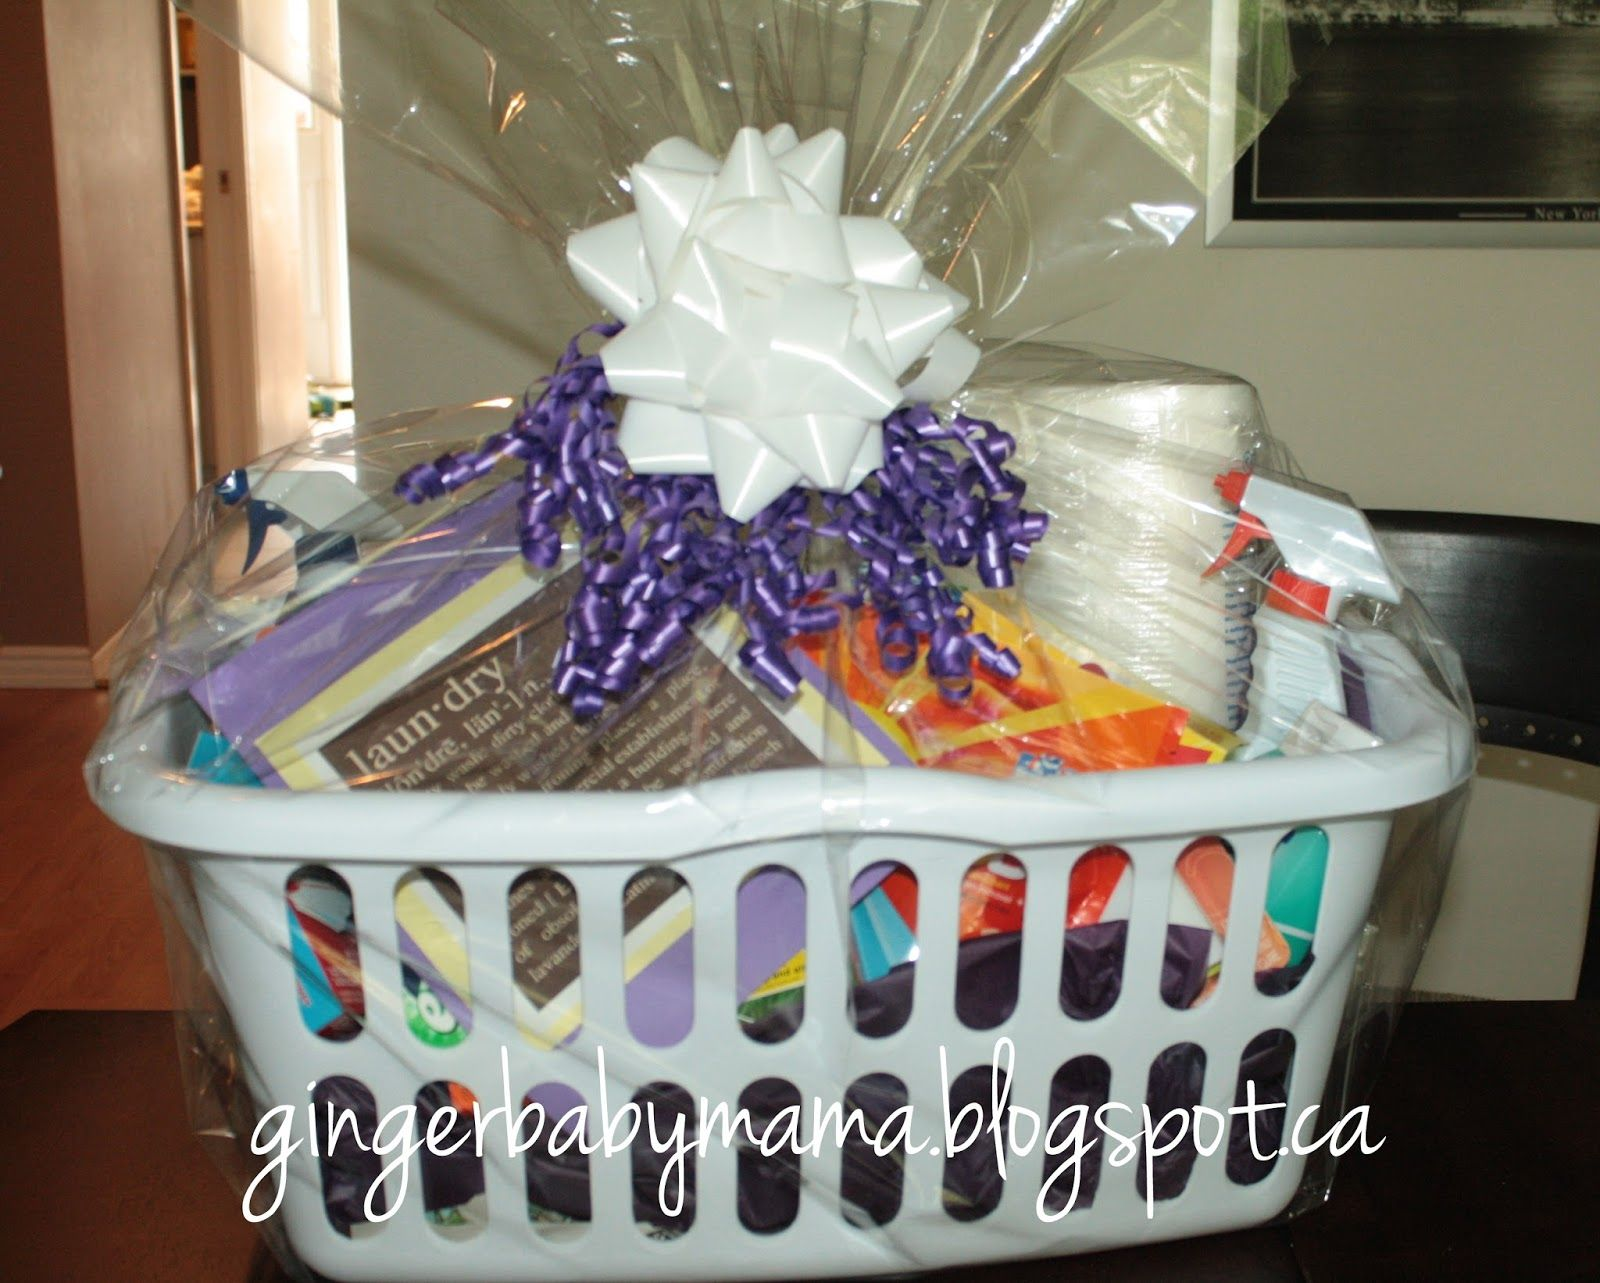 Wedding Shower Gift Themes: Shower Gift Poem Here's A Cute Way To Add A Little More